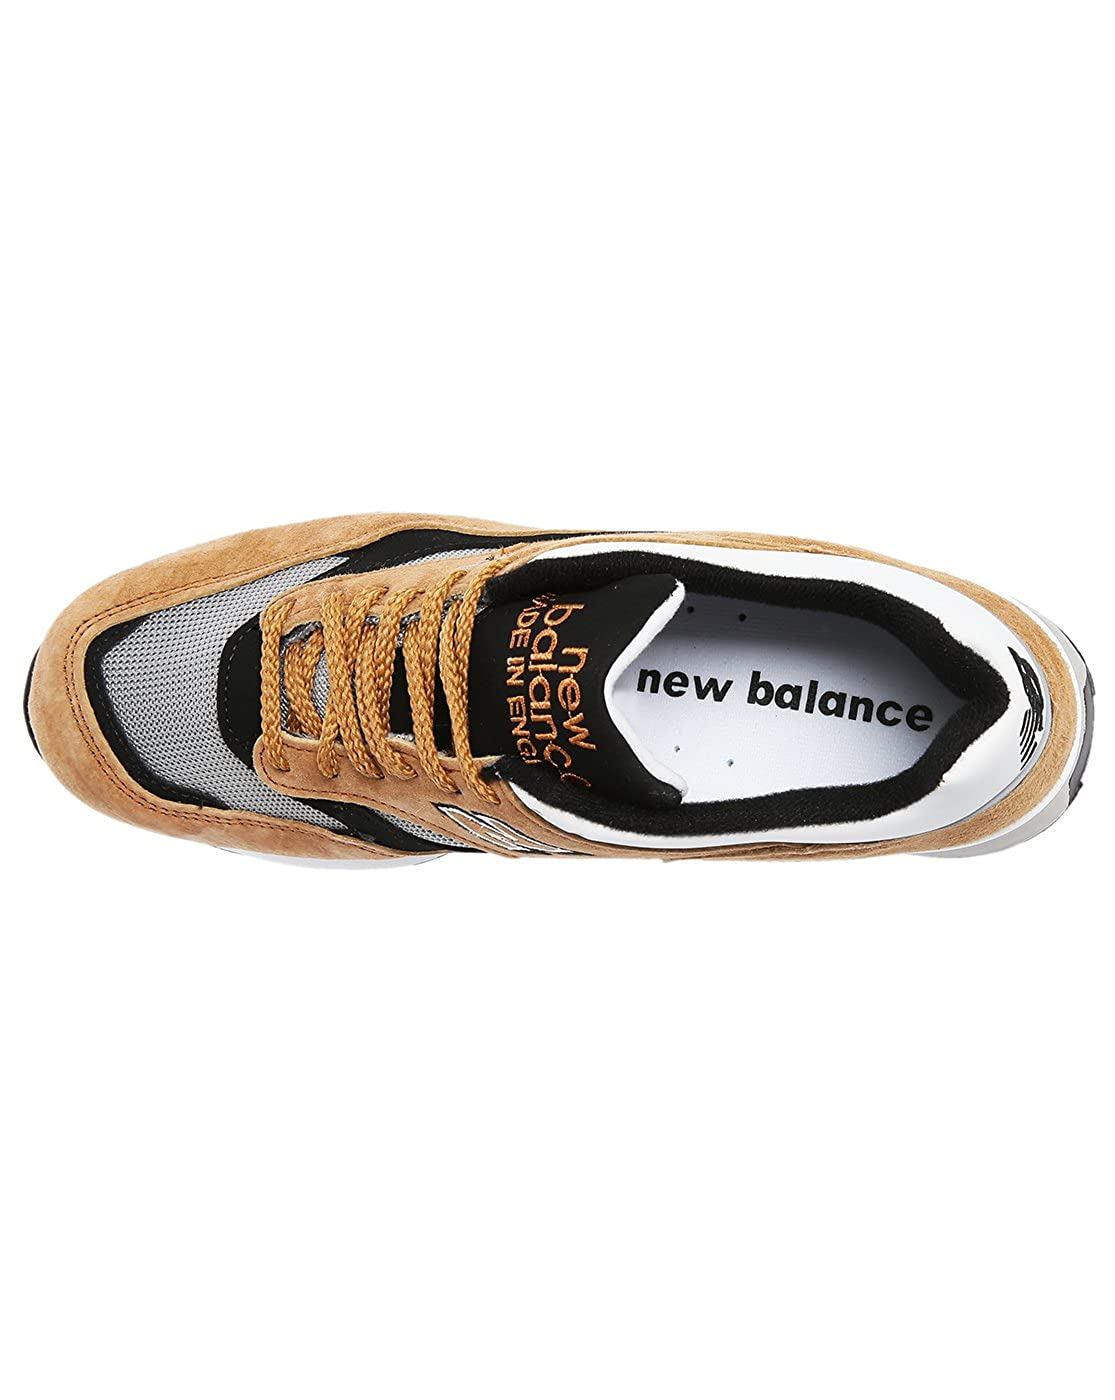 online store a3b18 8d065 NEW BALANCE - Sneakers - Men - 1500 Tan Suede Sneakers for ...